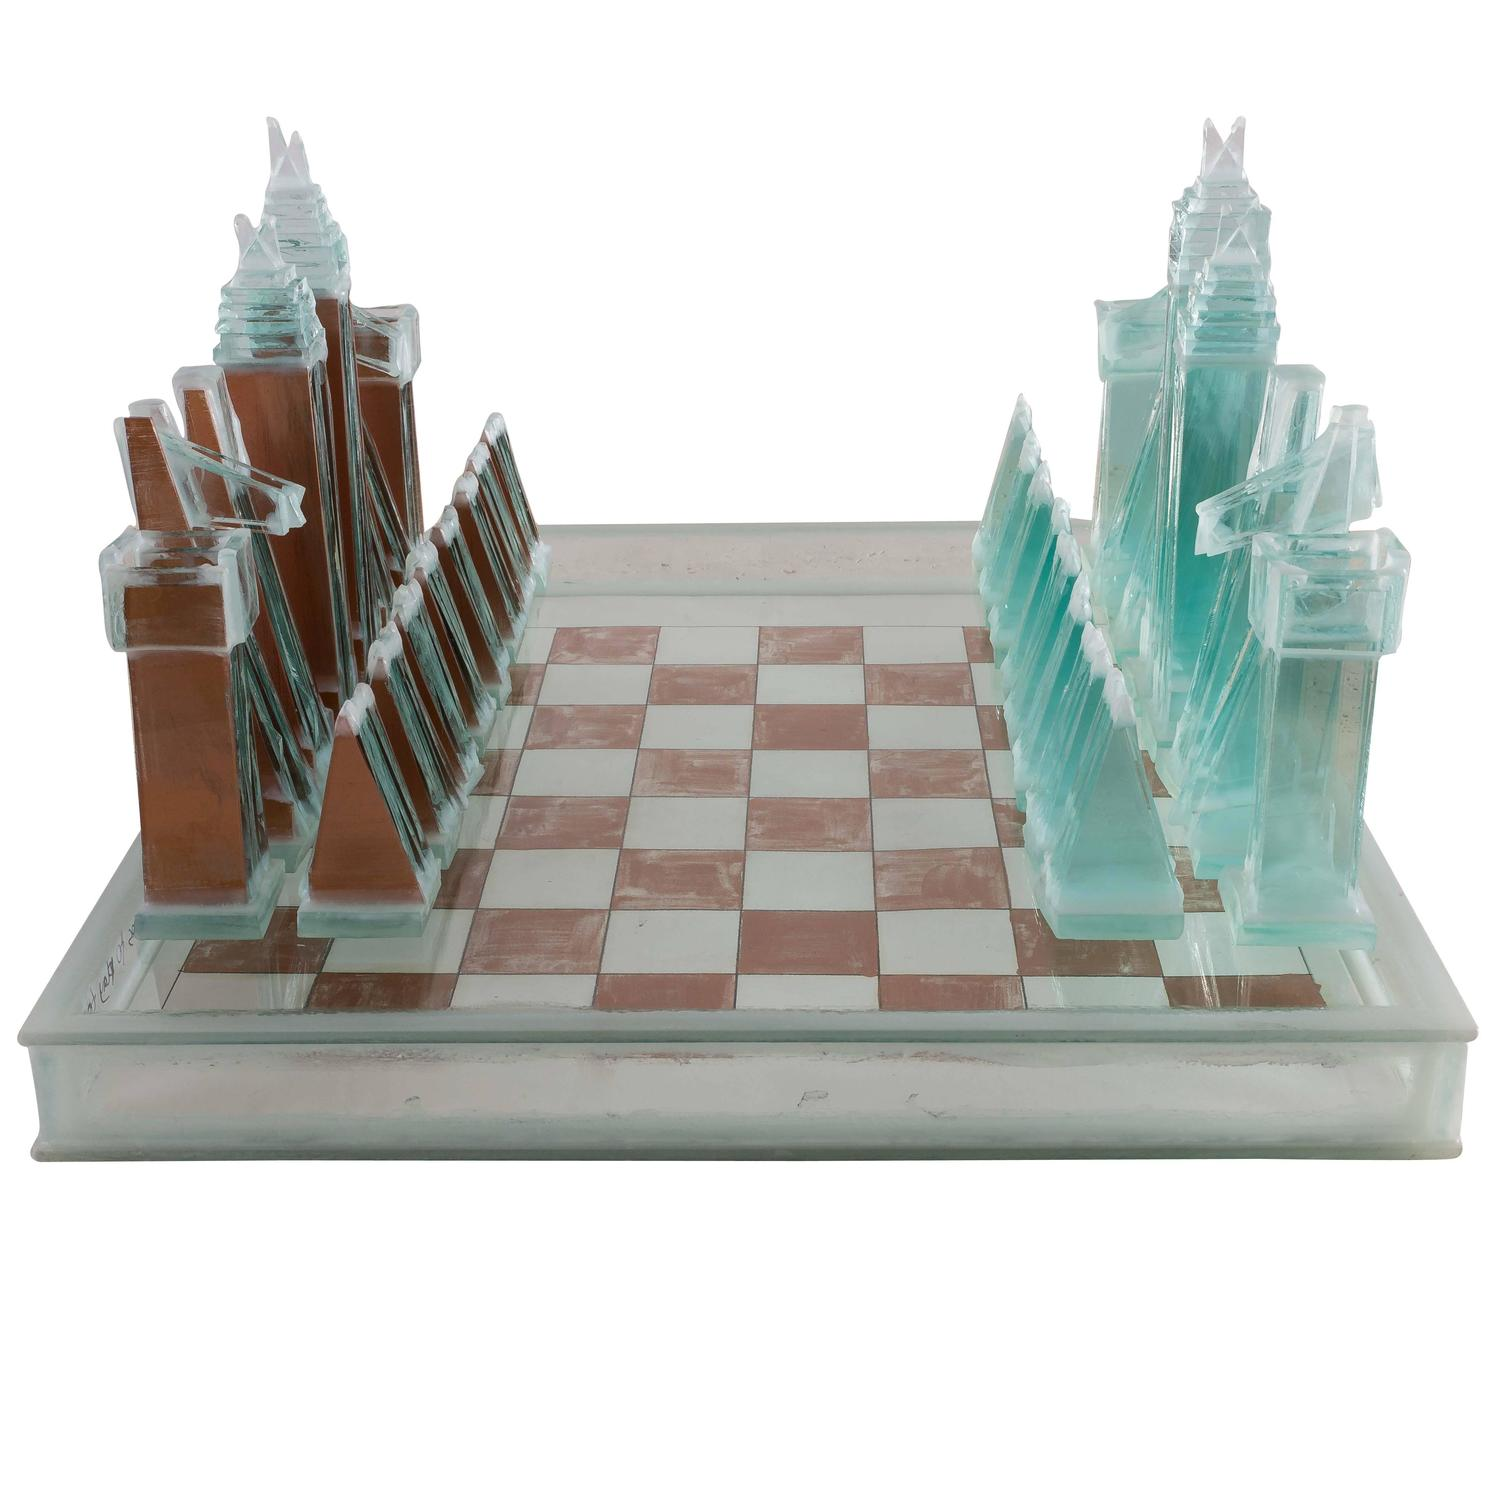 Clemens weiss copper chess object usa 2016 for sale at 1stdibs - Chess board display case ...